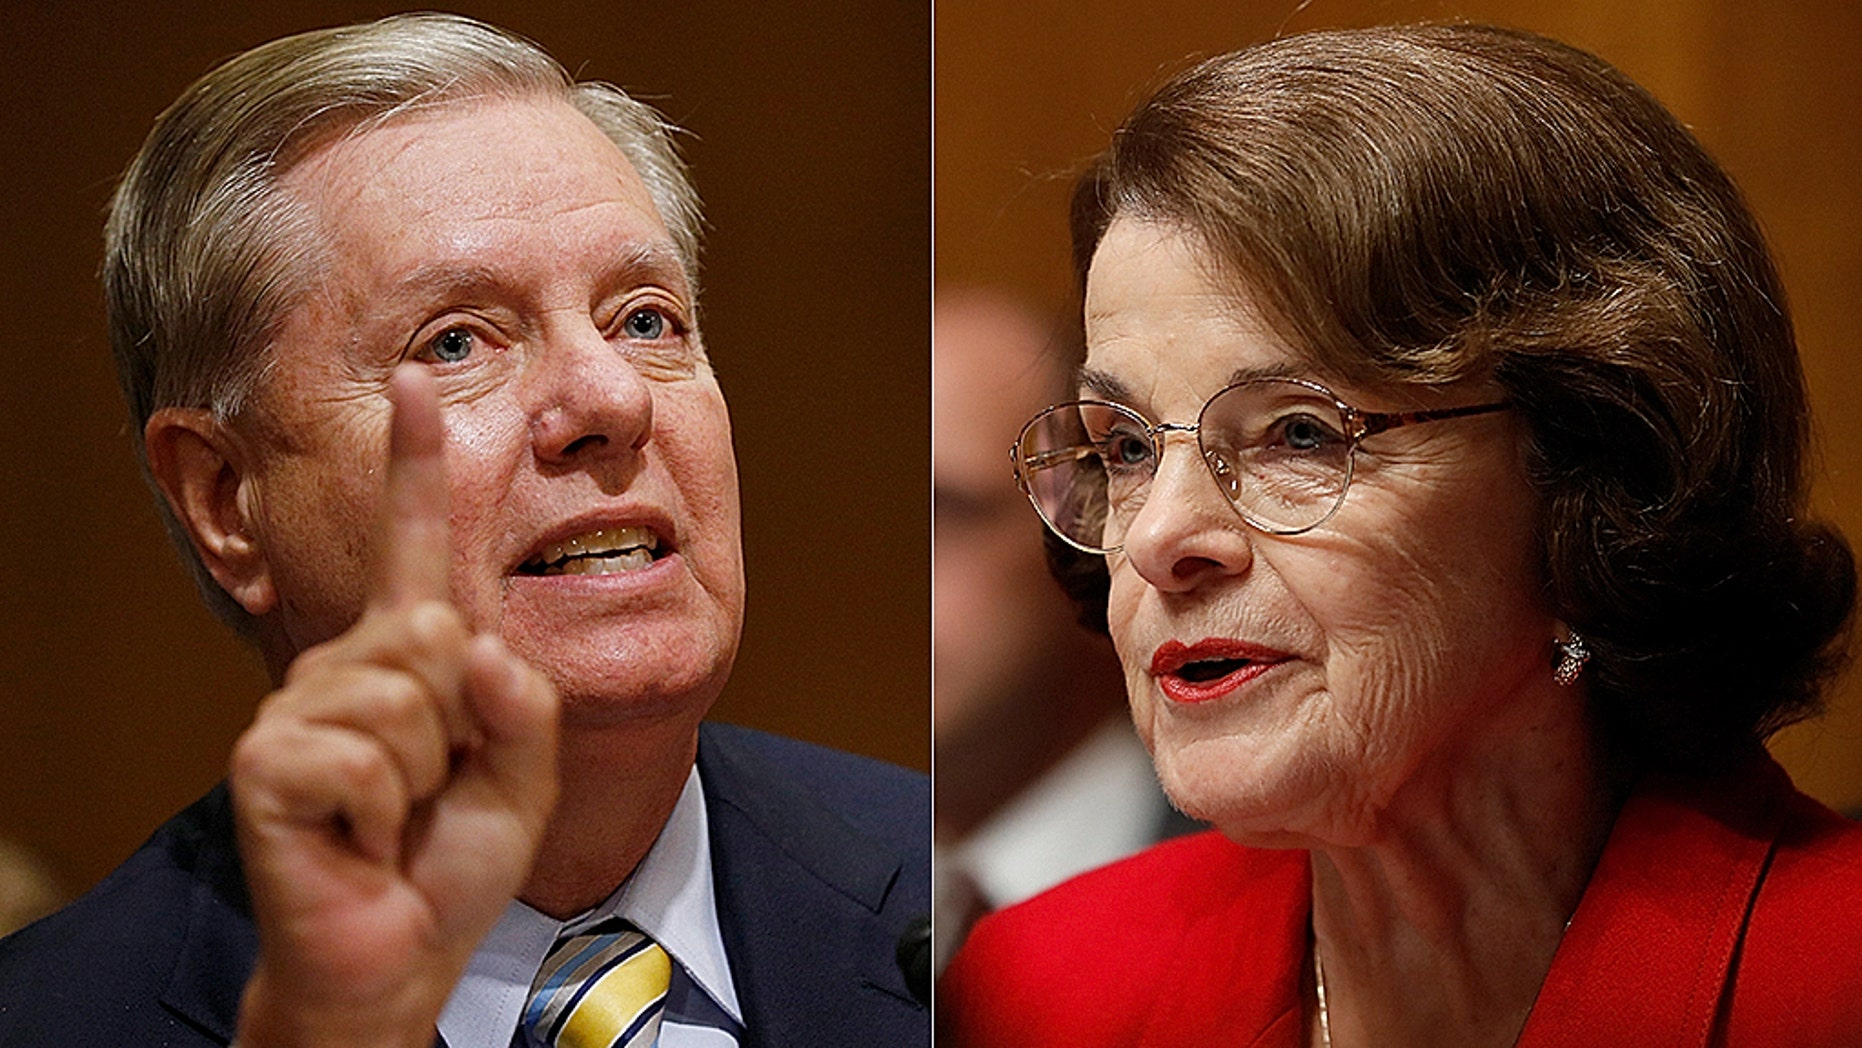 Sen. Lindsey Graham, R-S.C., slammed the FBI over the alleged double standard in the bureau's handling of a suspected Chinese spy in Sen. Dianne Feinstein's,D-Calif., office.